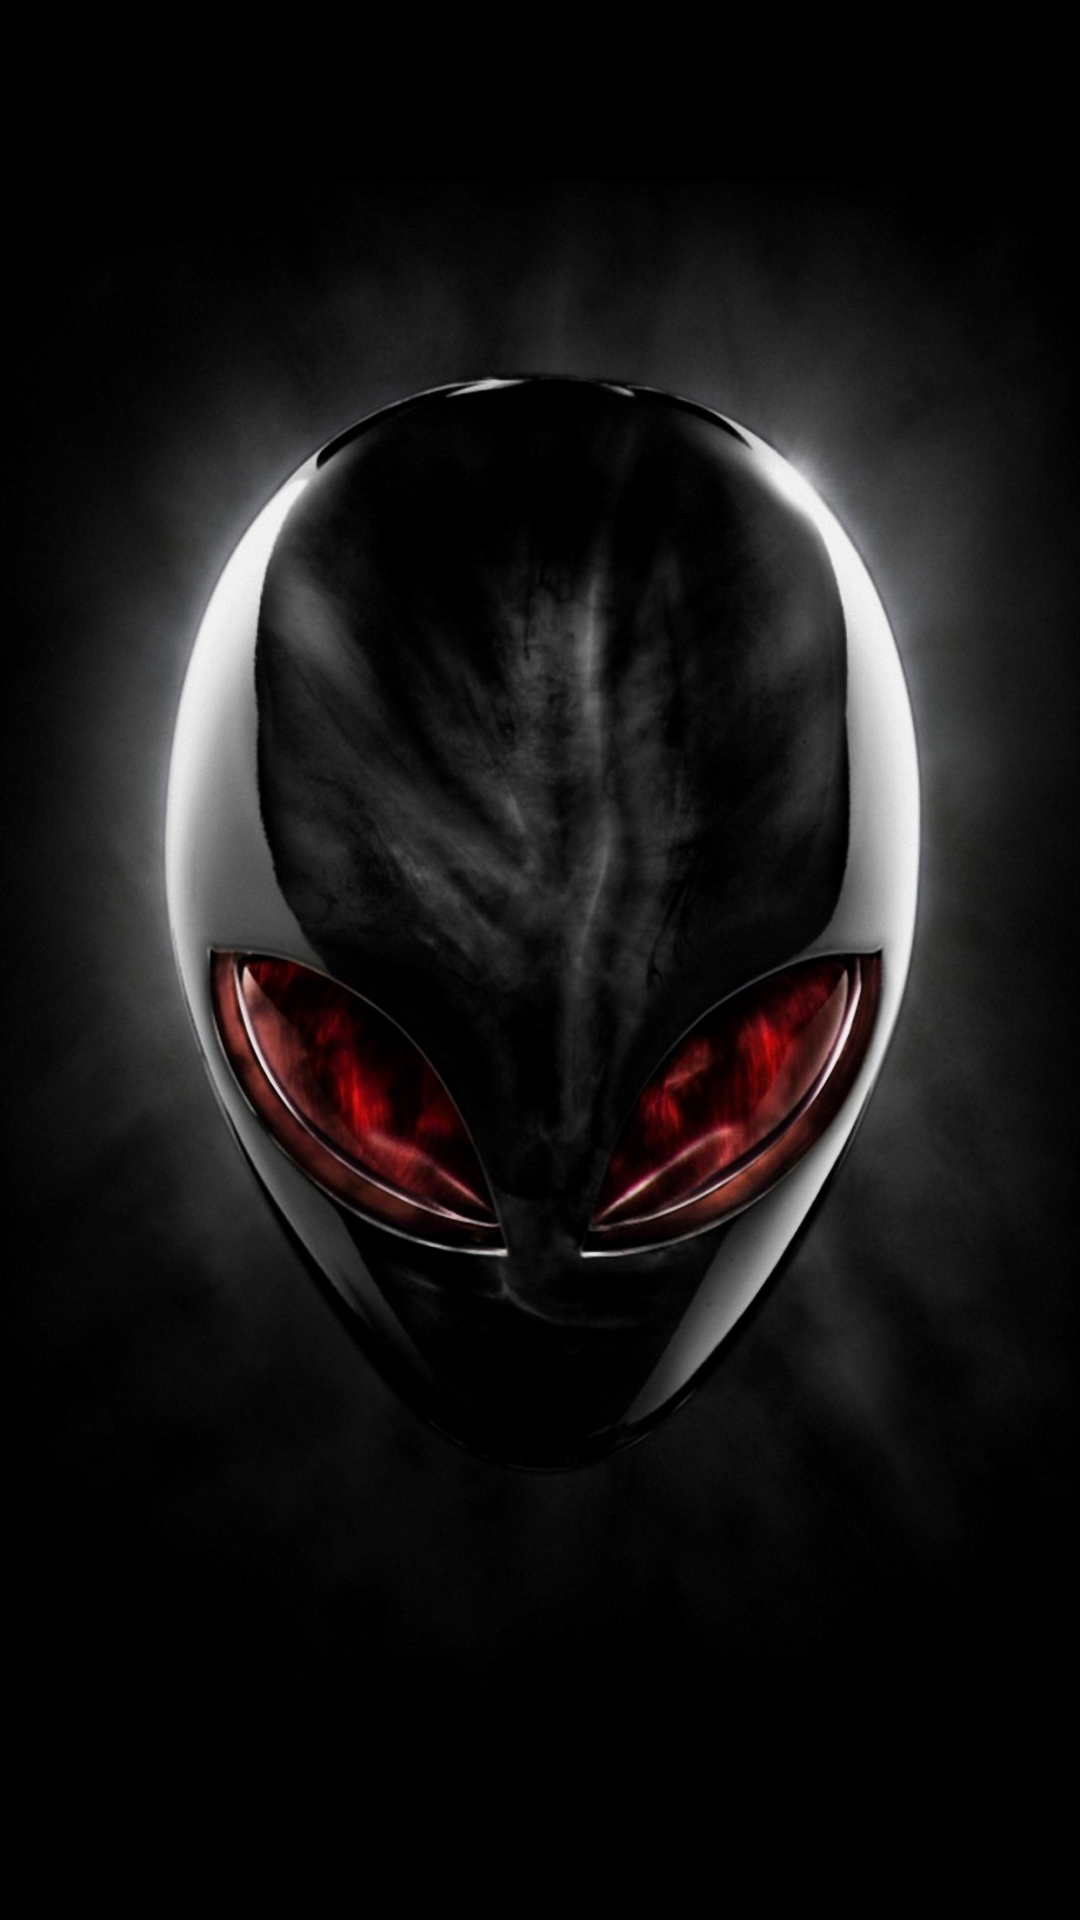 download cool alienware wallpaper for iphone 6s plus 1080x1920